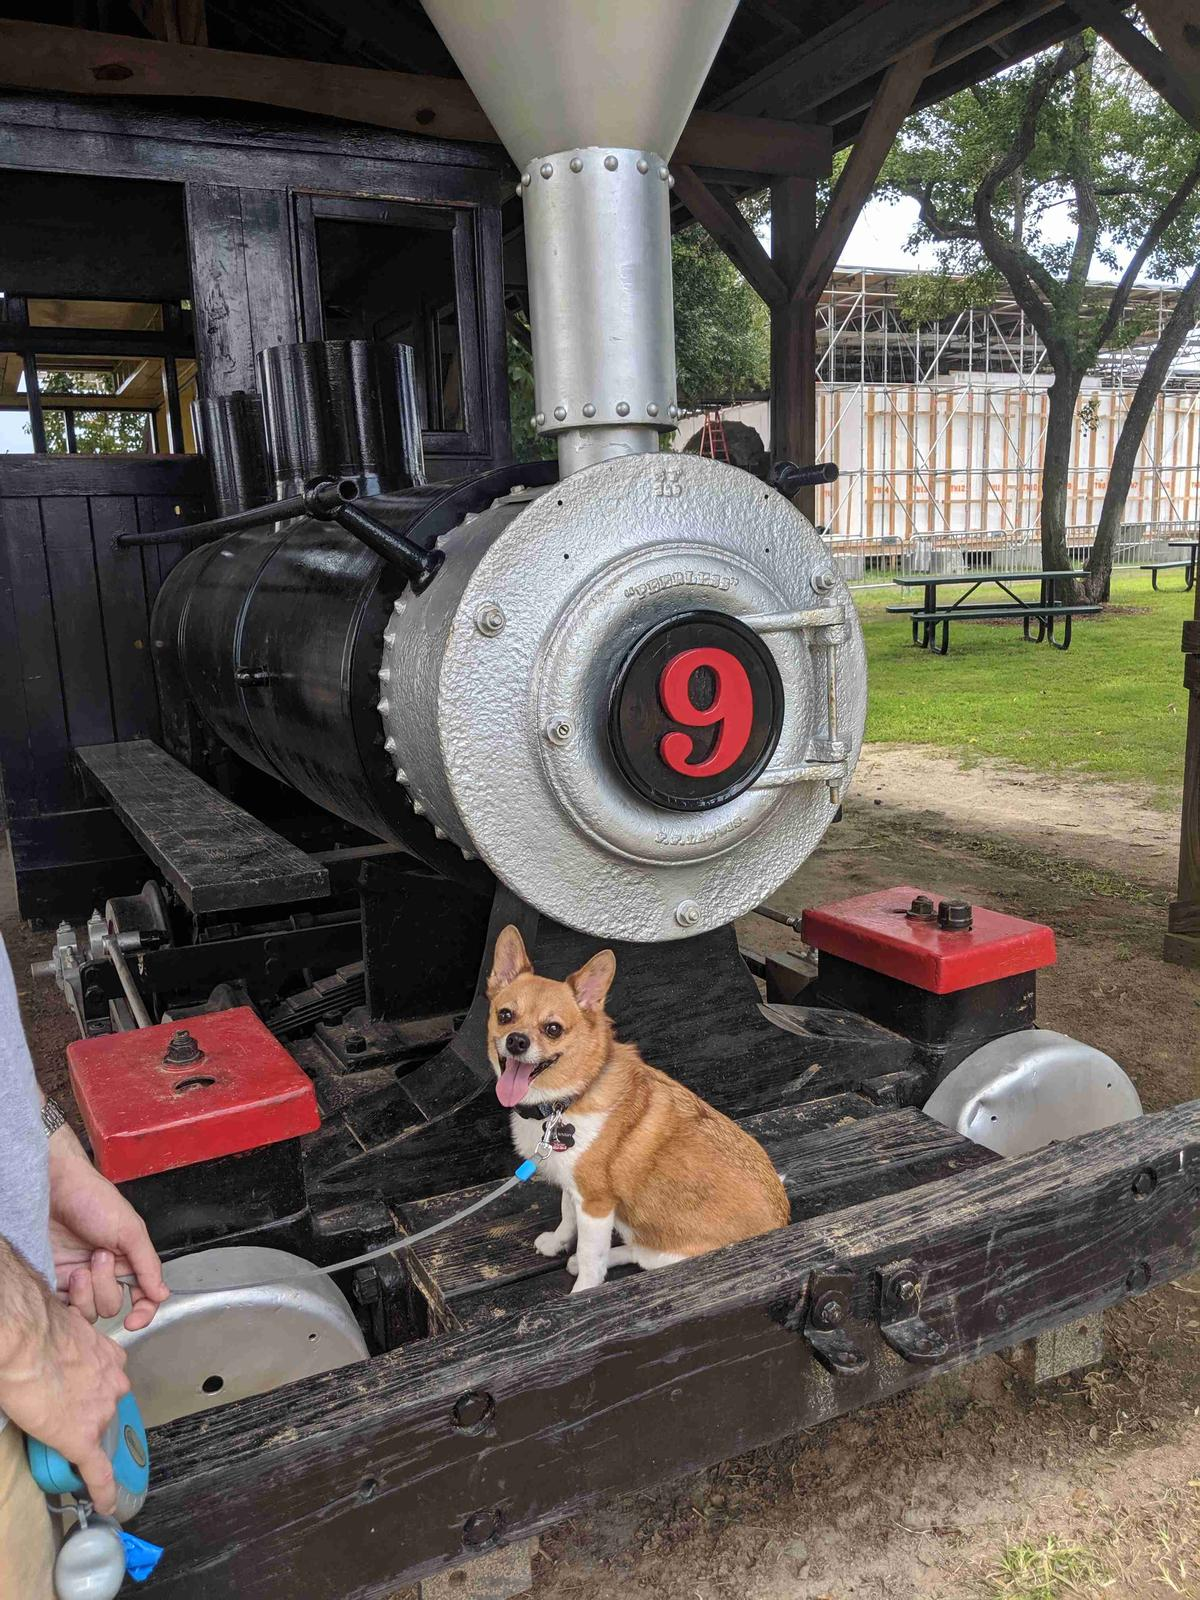 A Corgi sits in front of a train at the Georgia State Railroad Museum in dog-friendly Savannah.